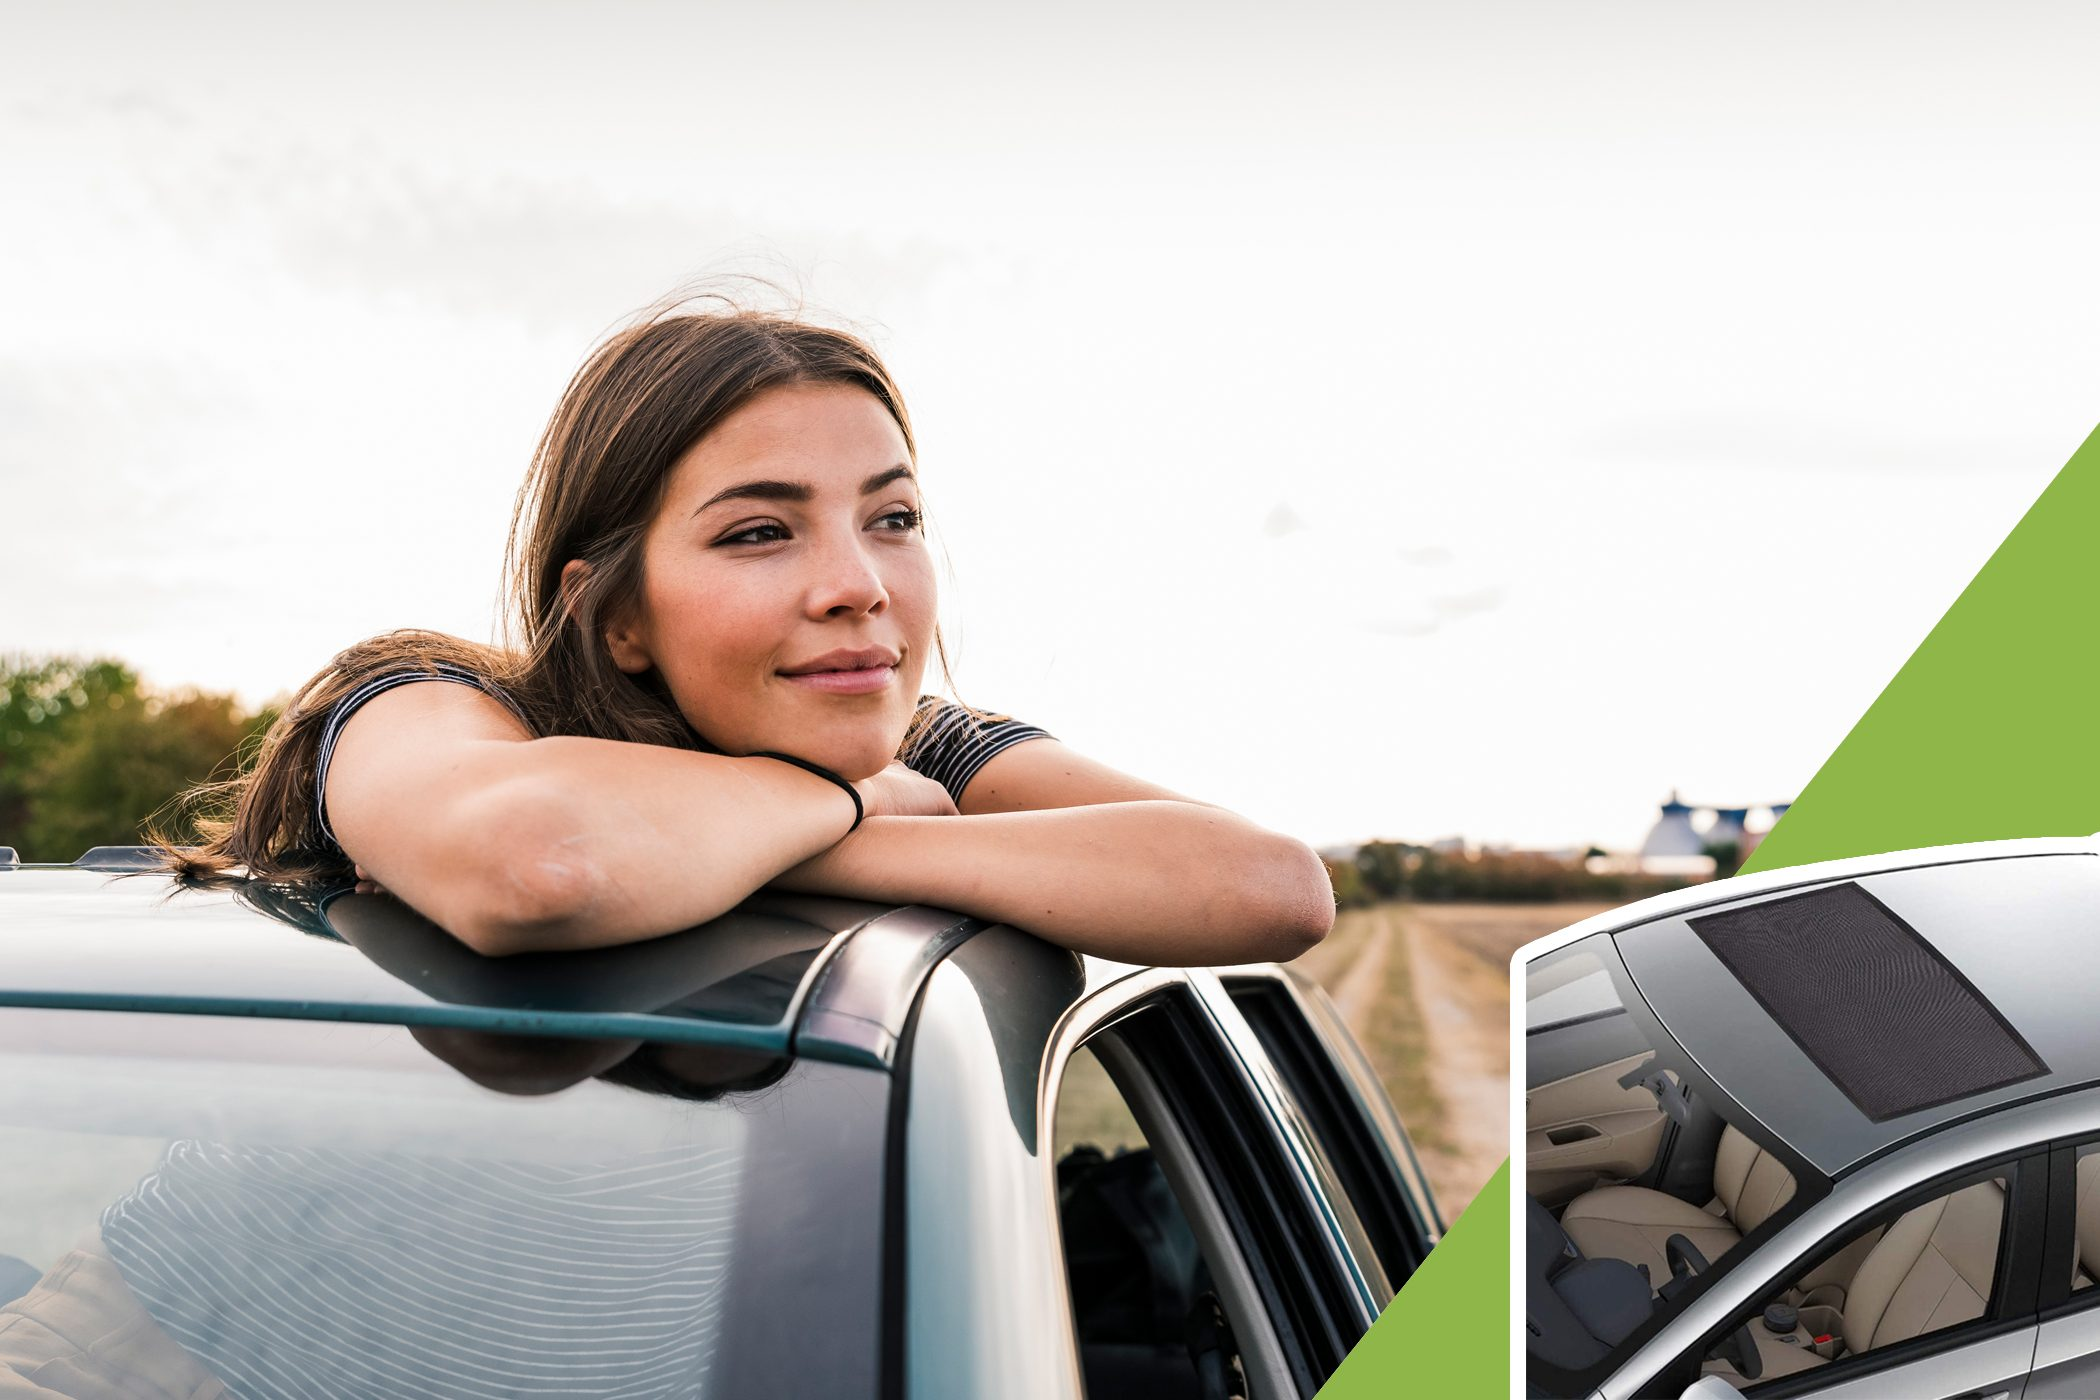 woman looking out sunroof with inset of sunroof screen